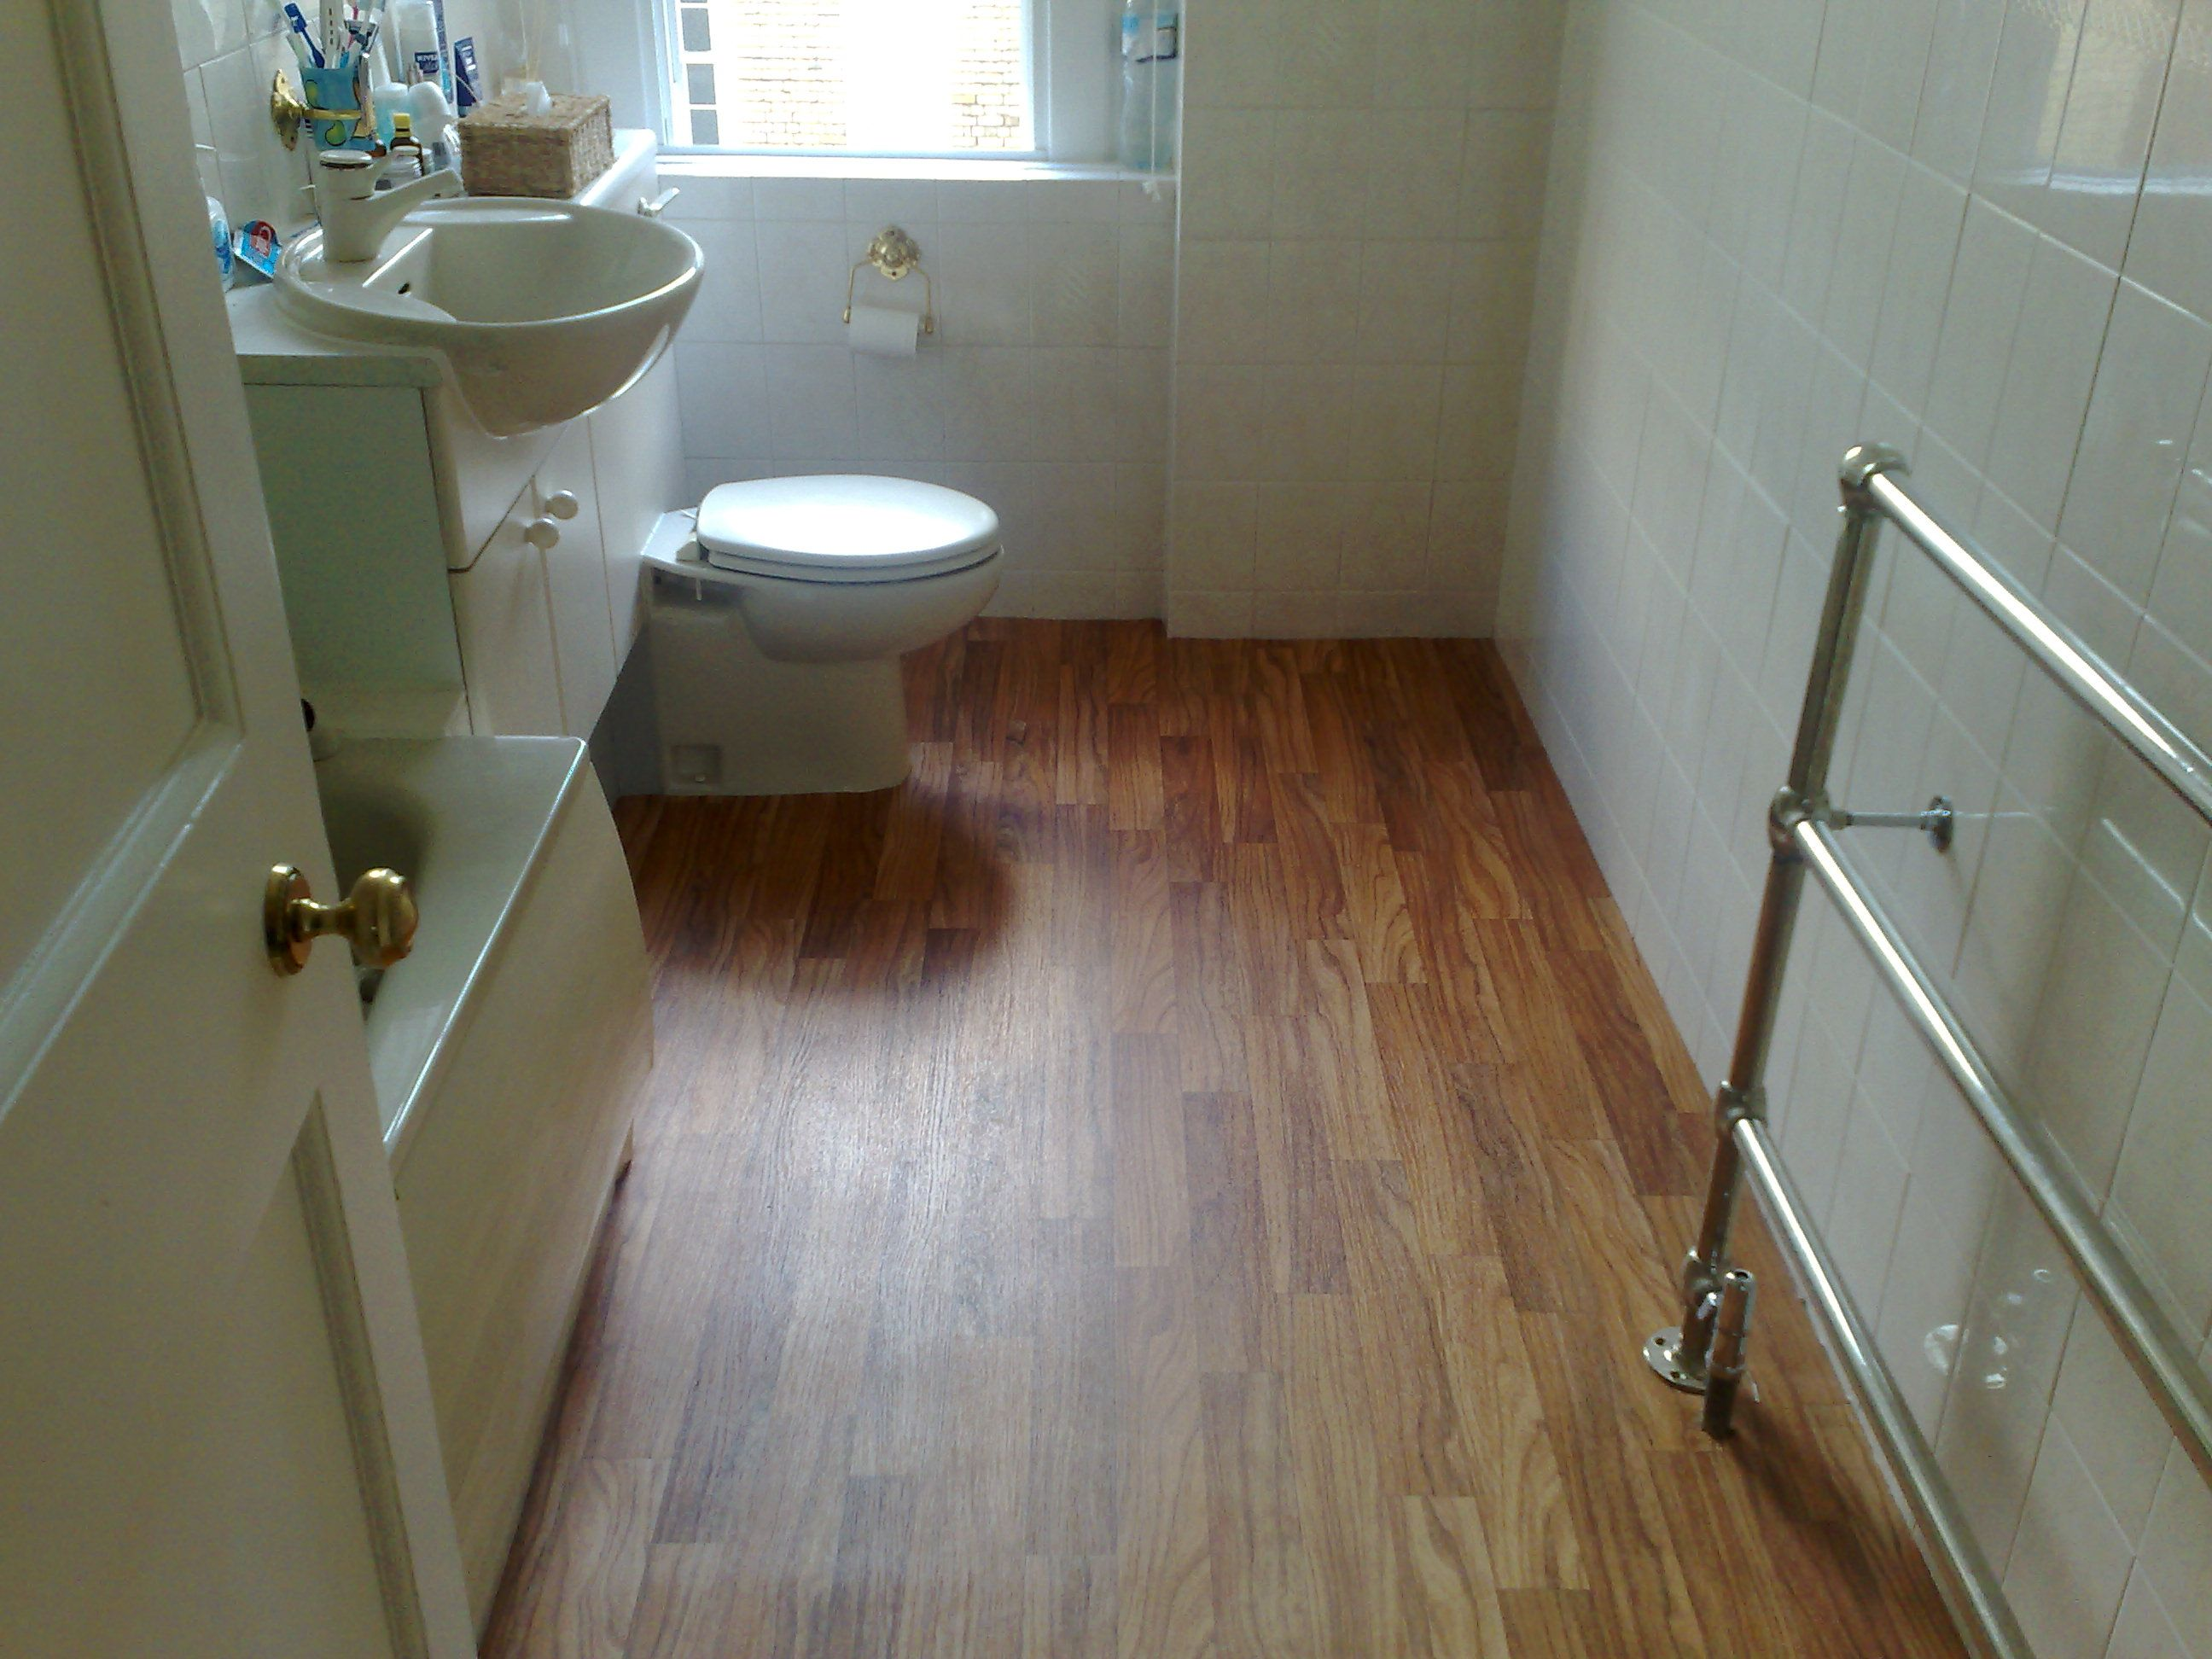 Bathroom floor tile bathroom wooden flooring bathroom design bathroom floor tile bathroom wooden flooring bathroom design ideas dailygadgetfo Gallery